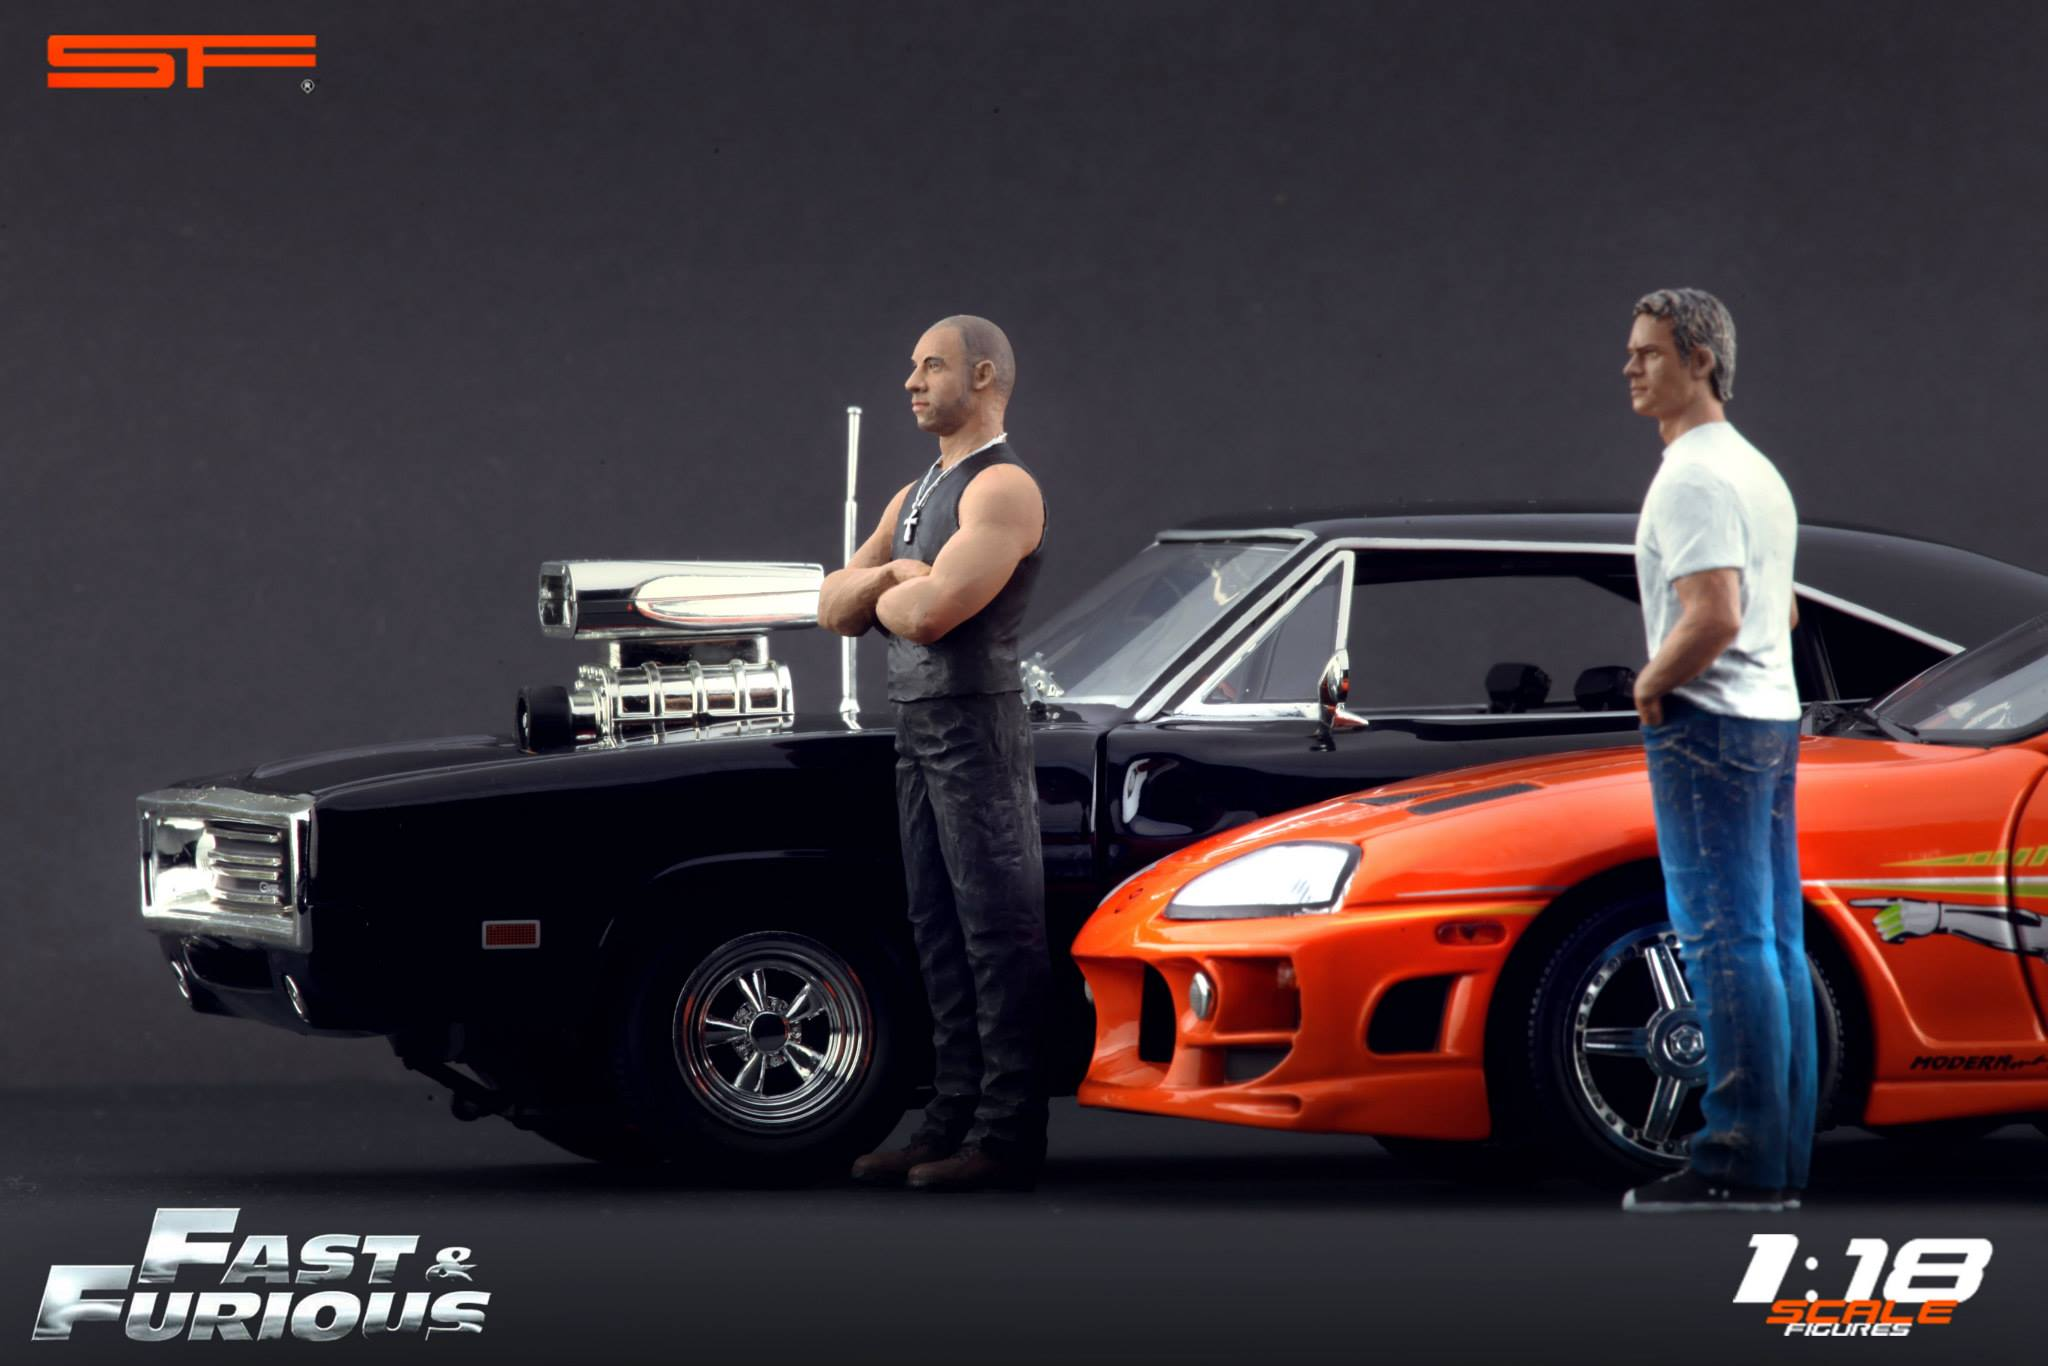 Scale Figures releases Fast and Furious famed Paul Walker ...